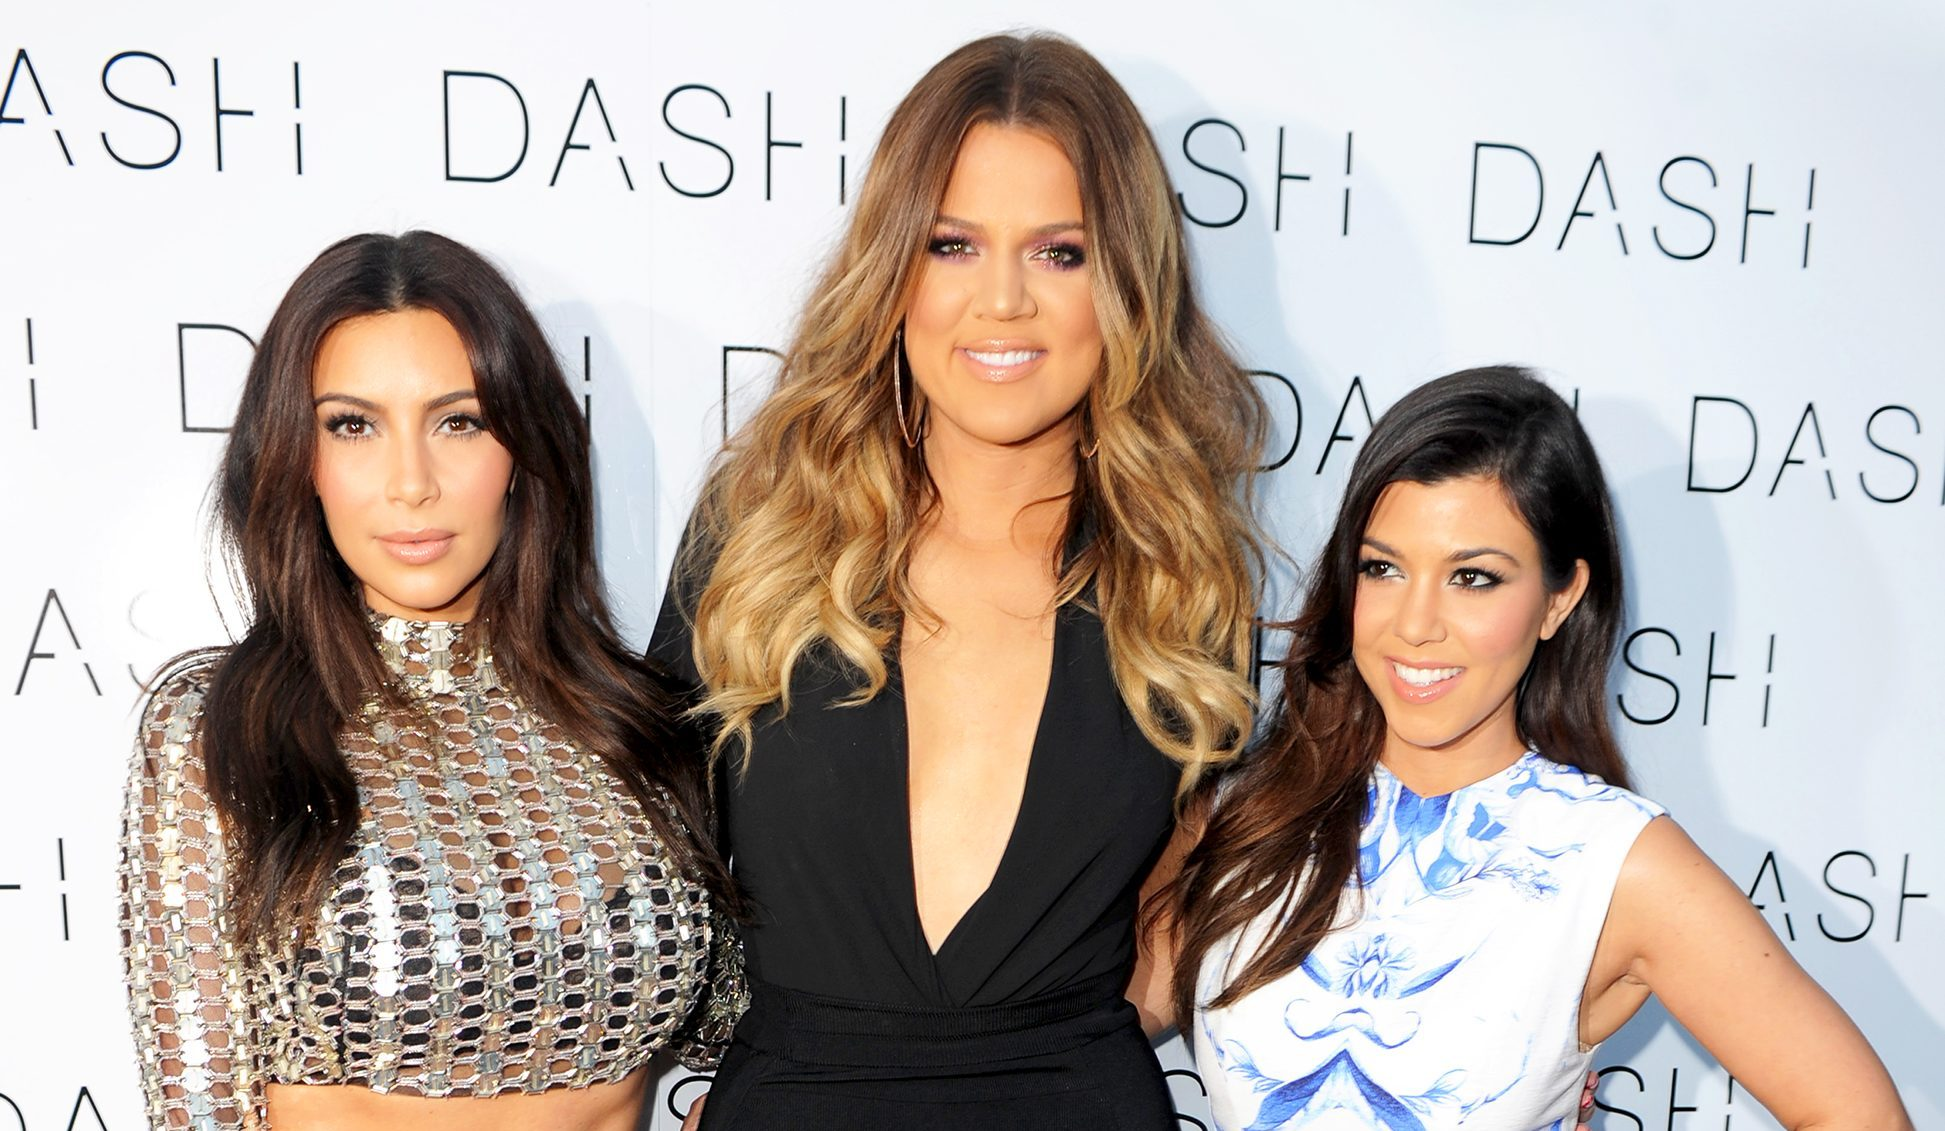 Kim Kardashian, Khloe Kardashian and Kourtney Kardashian attend the 2014 Grand Opening of DASH Miami Beach at Dash Miami Beach in Miami Beach, Florida.